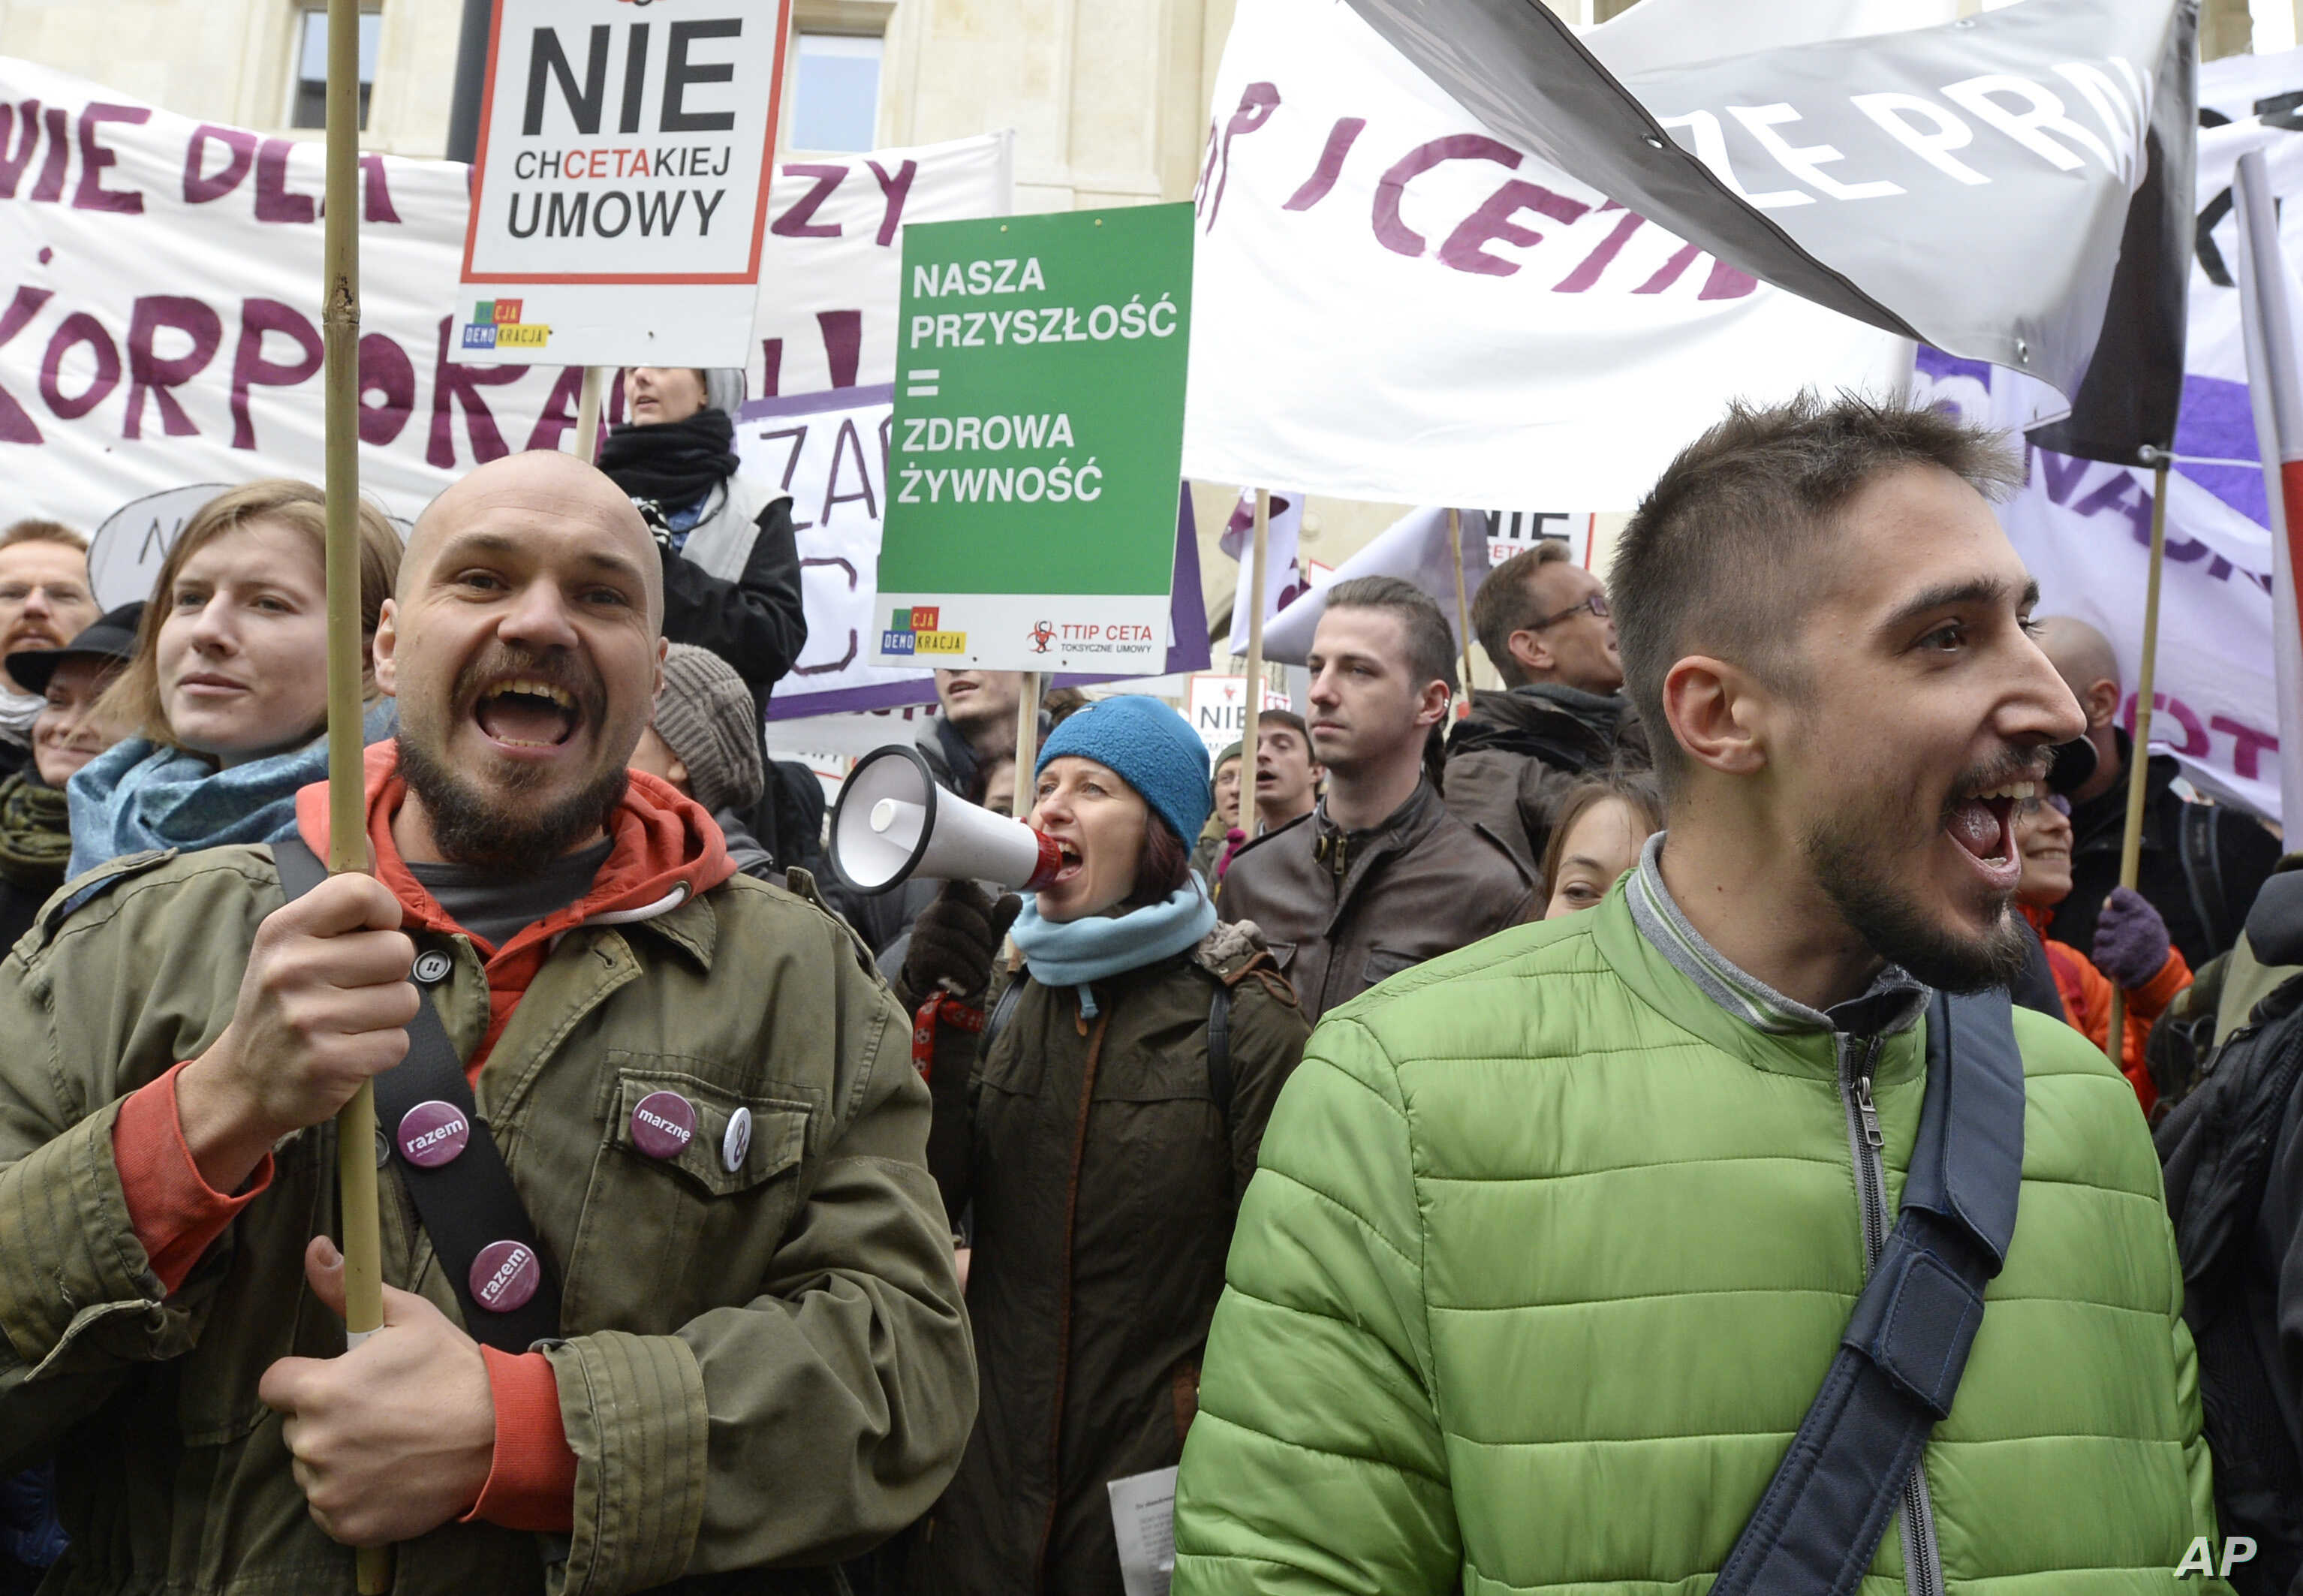 CETA Trade Deals: Protesters shout slogans during a march against trade deals with Canada and the U.S. in Warsaw, Poland, Saturday, Oct. 15, 2016.